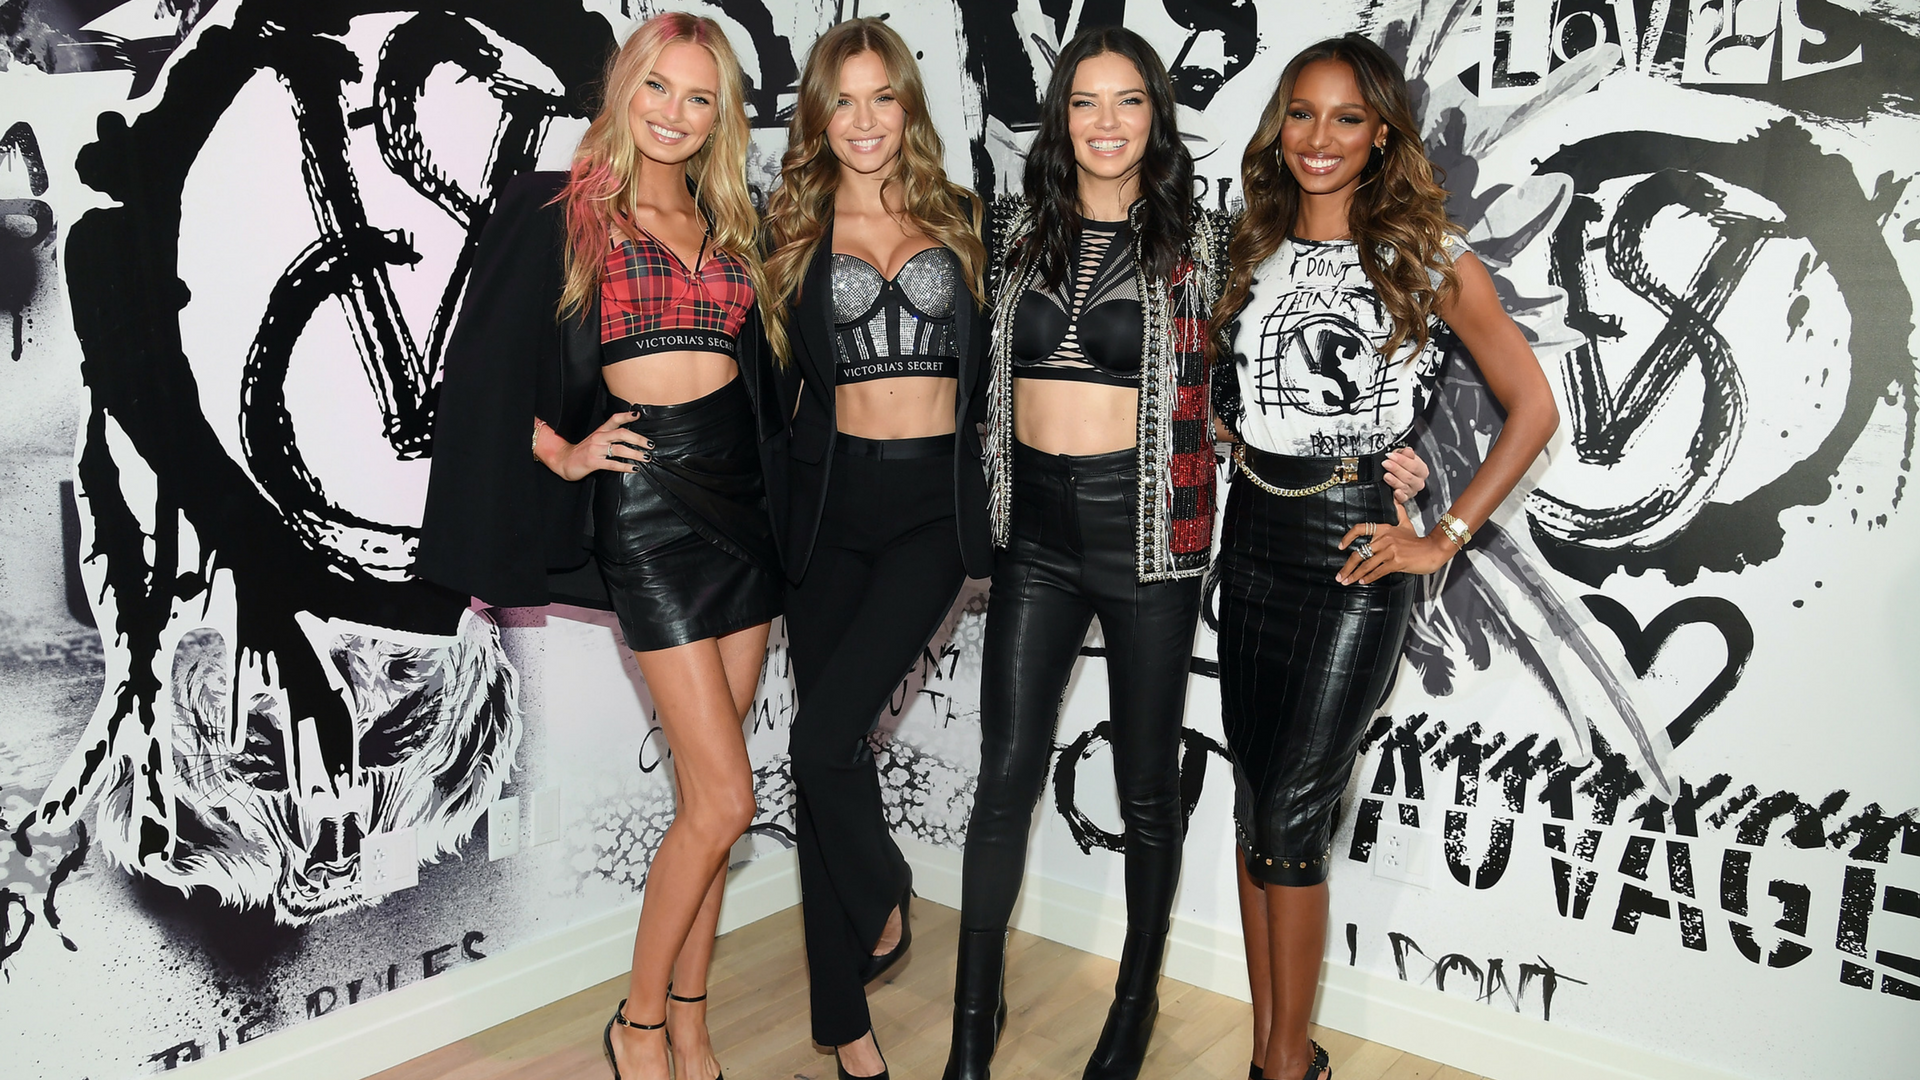 Victoria's Secret X Balmain Is Coming To The UAE